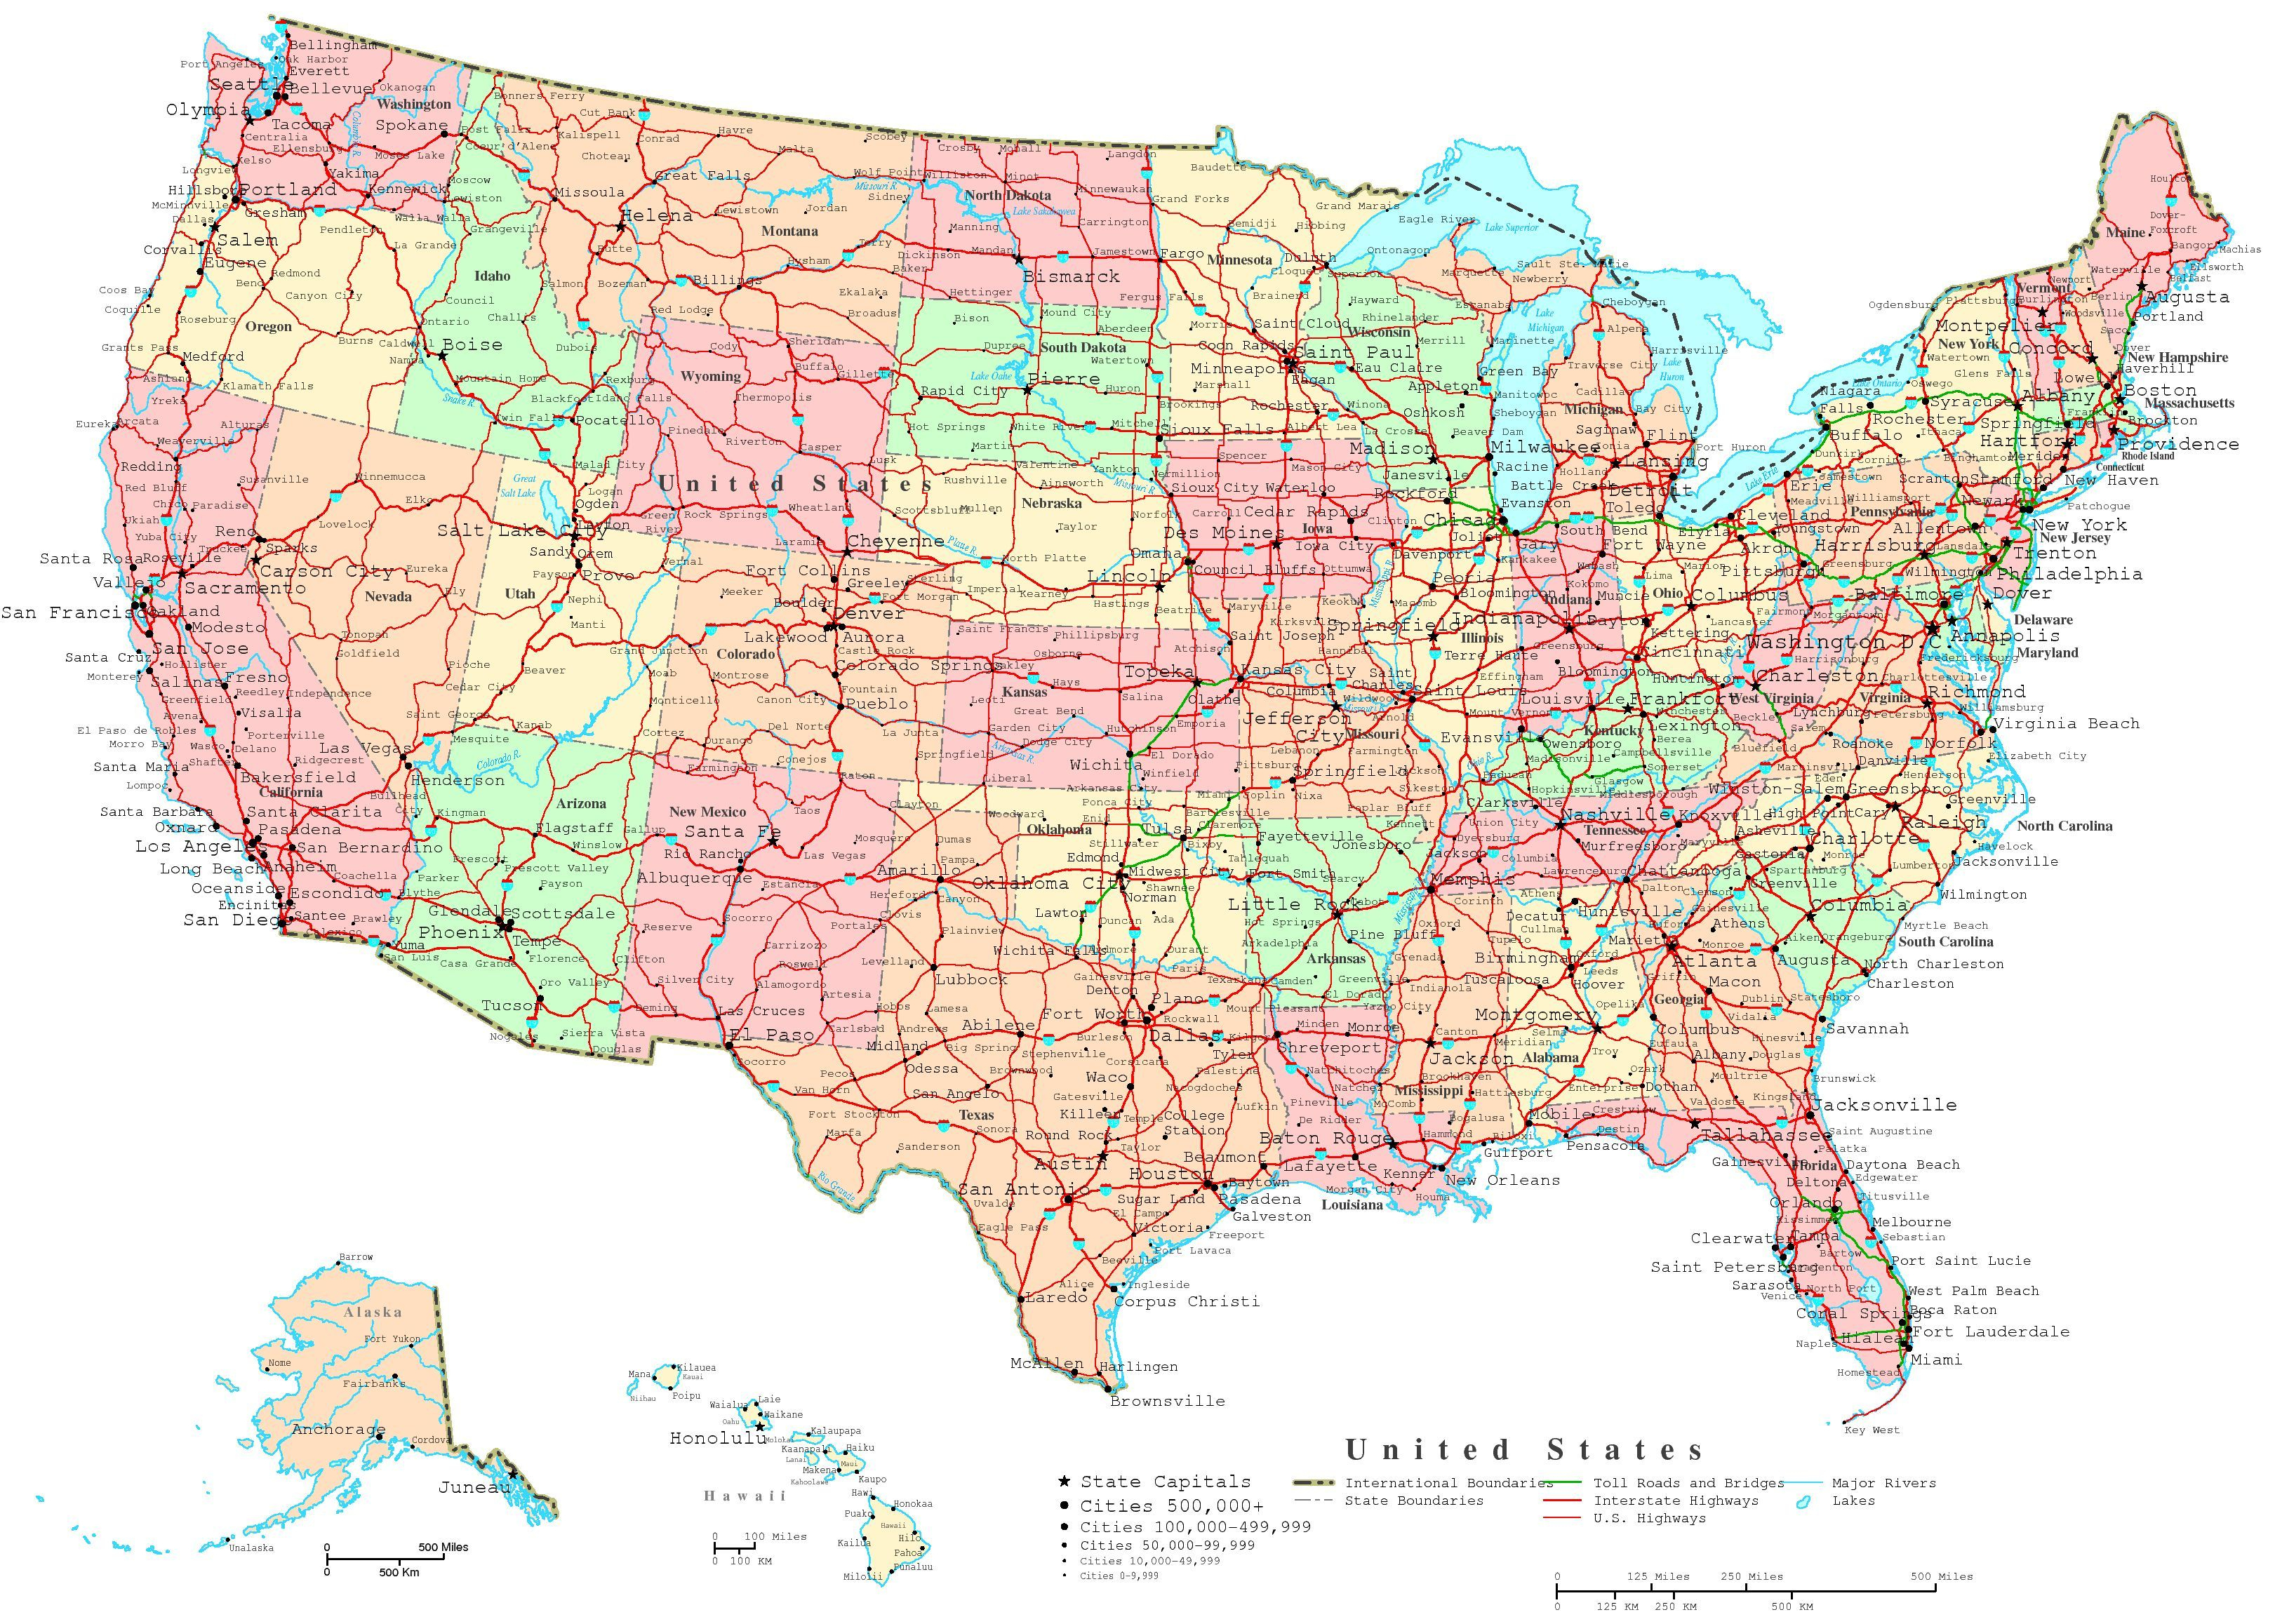 Map Of The Us States | Printable United States Map | Jb's Travels - Free Printable State Maps